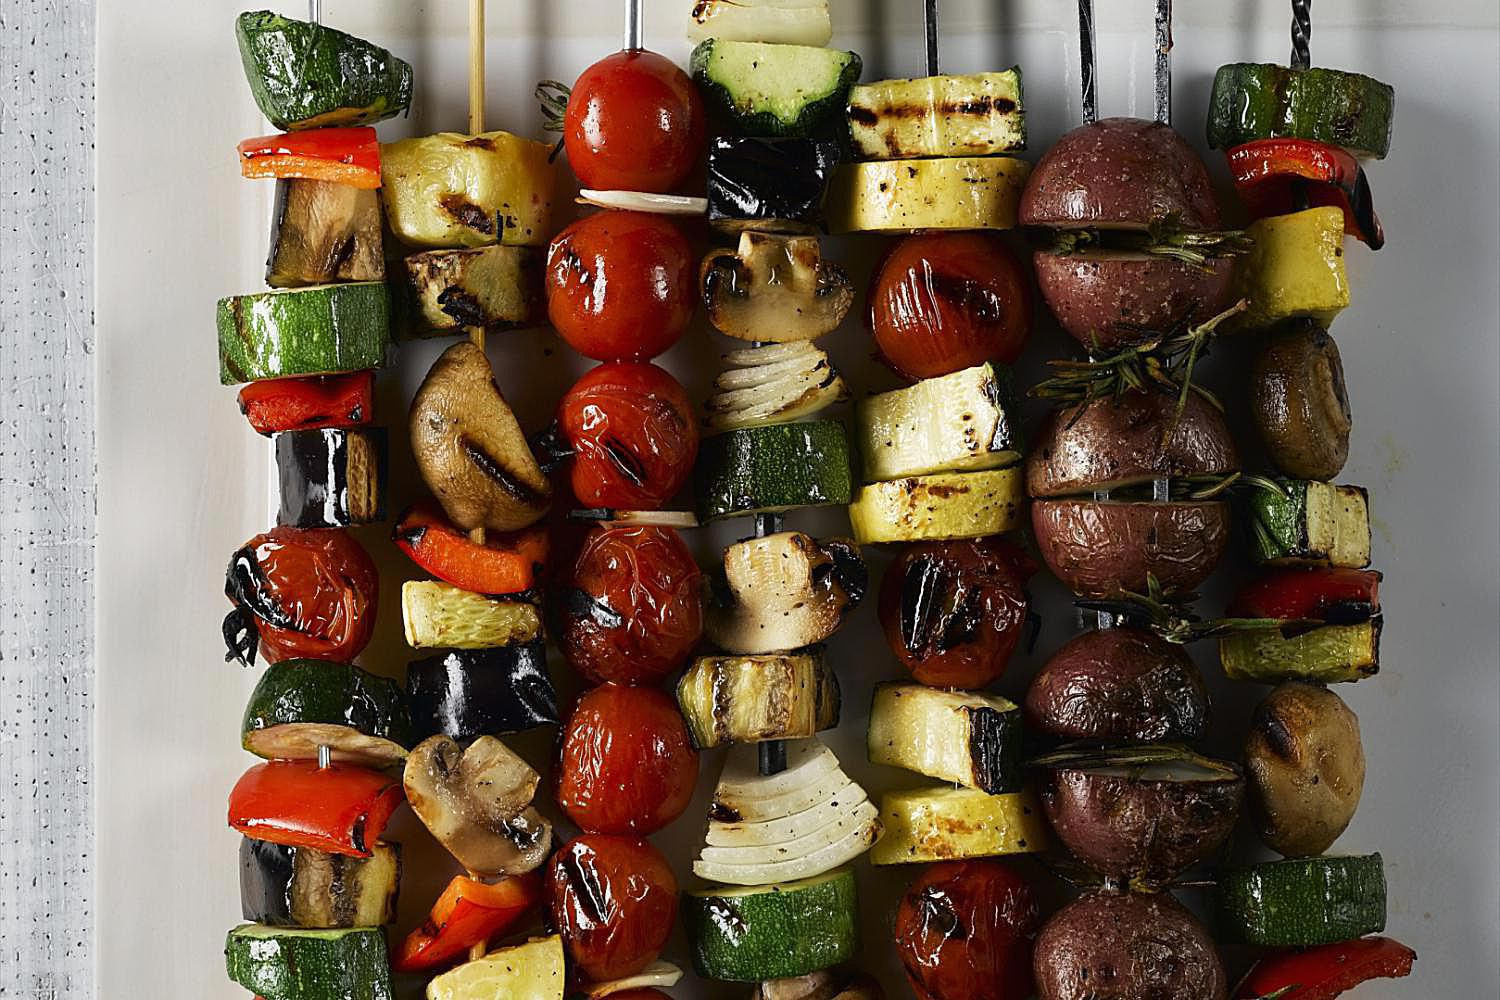 Grilled Vegetable Kebabs are a Delicious and Healthy Summertime Dish